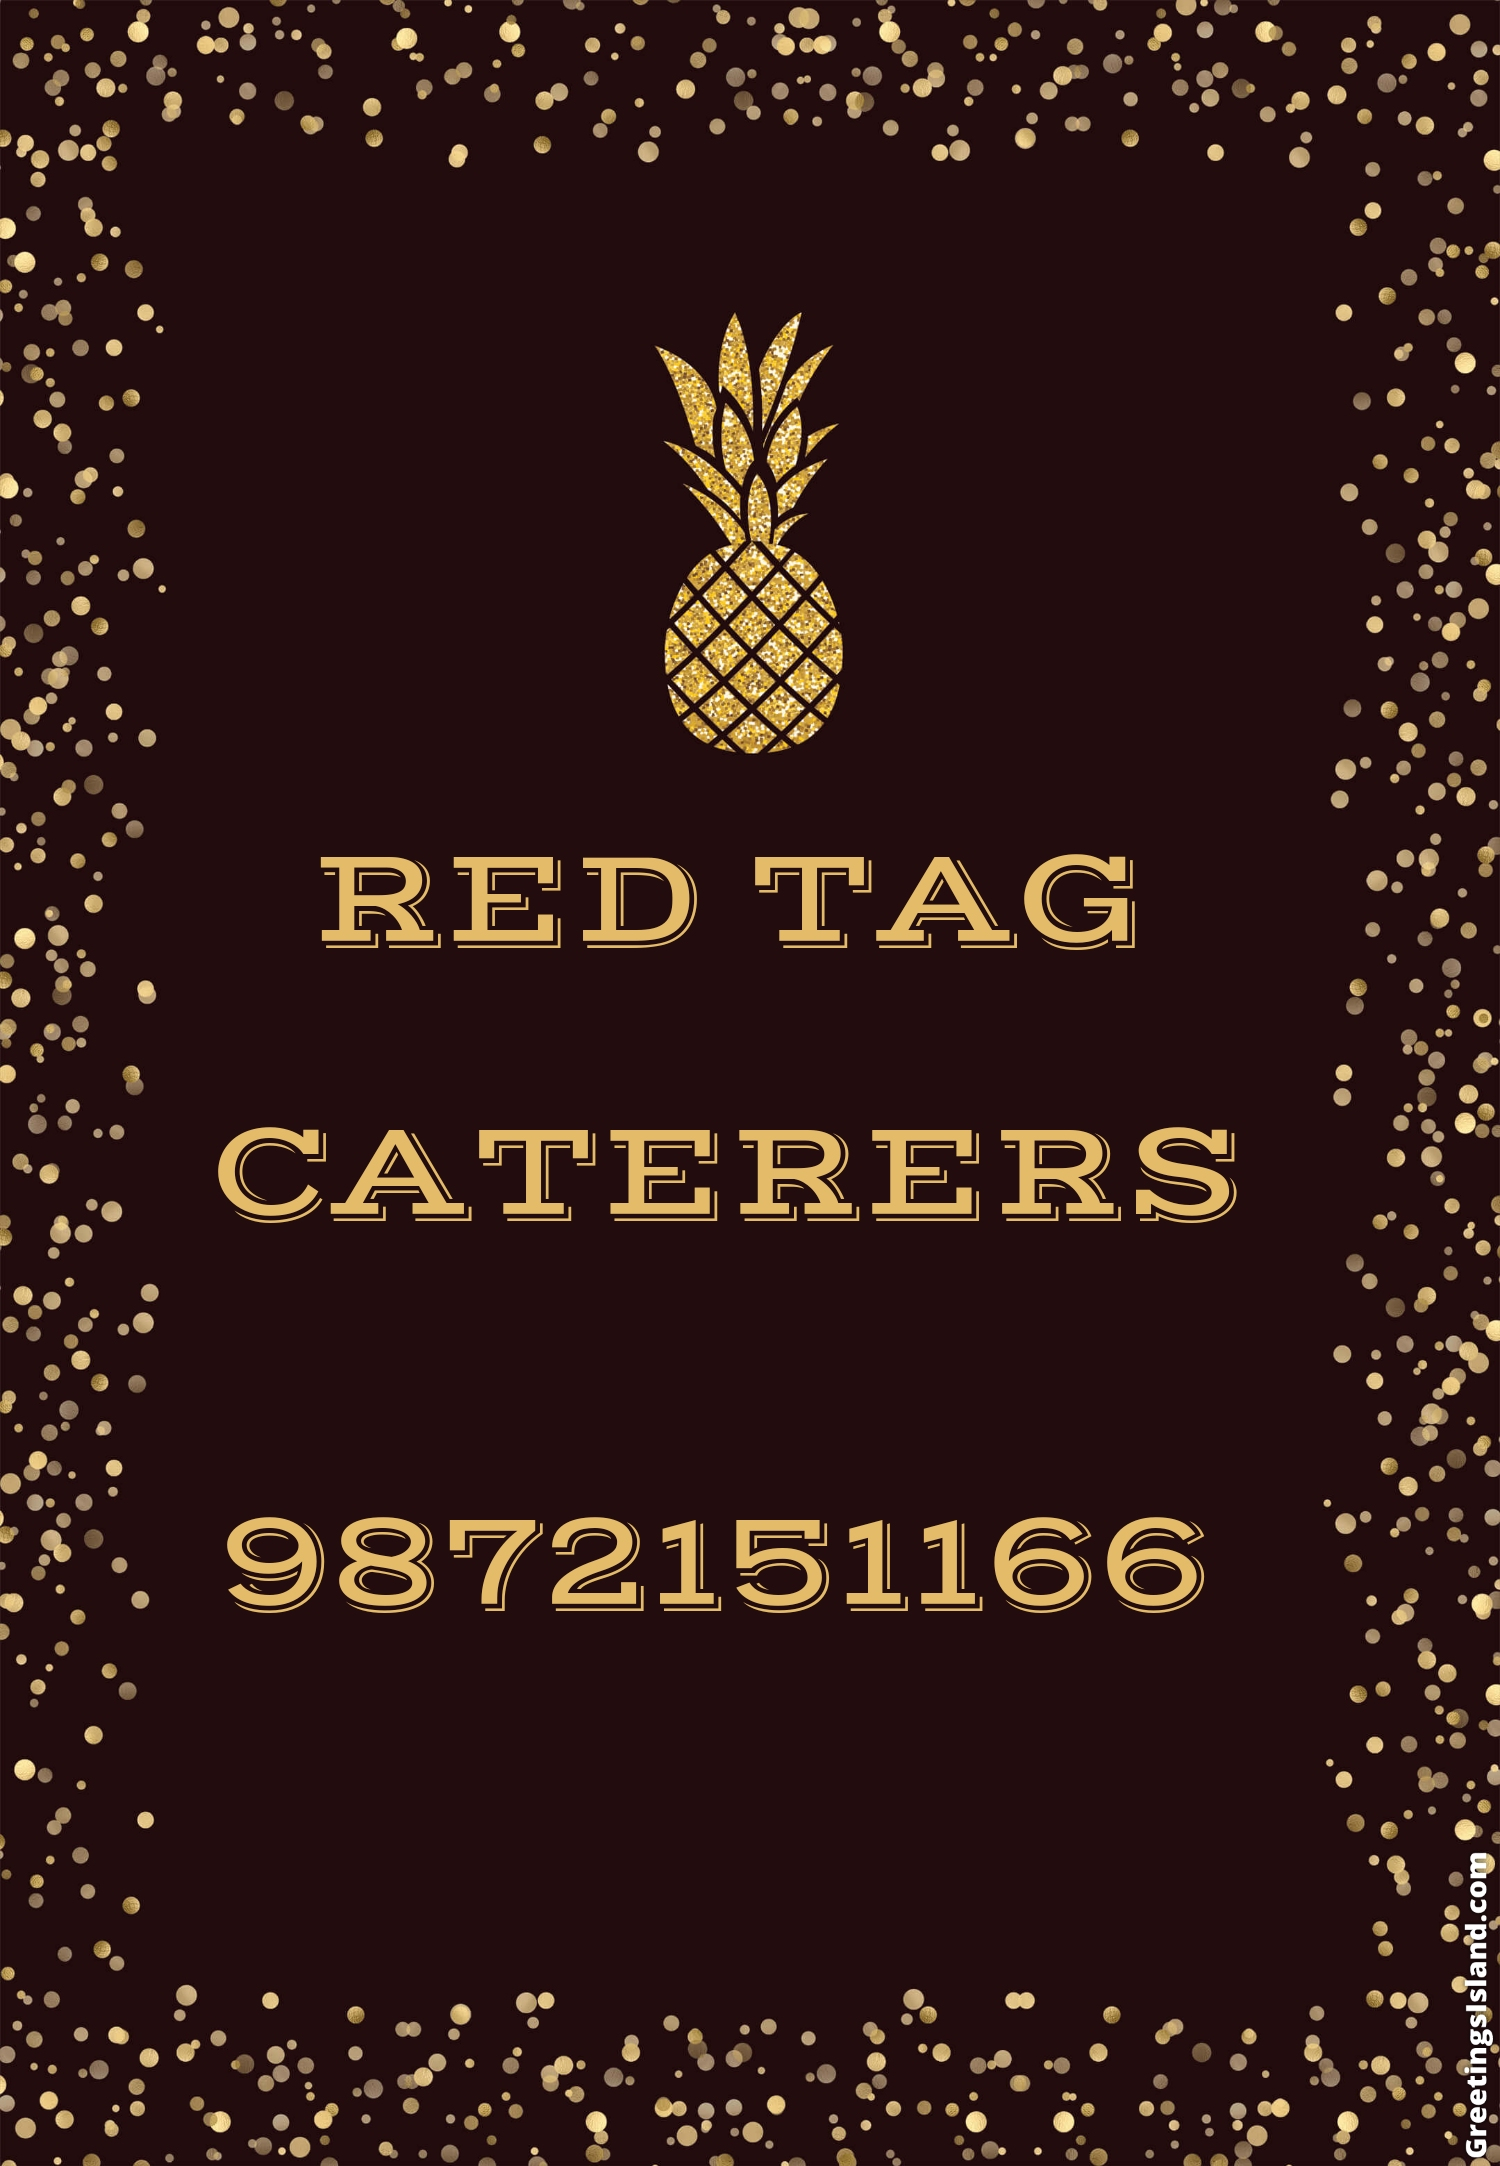 Red Tag Caterers, Best caterers in Mohali, top caterers in Mohali, exclusive catering service in Mohali, premier catering service in Mohali